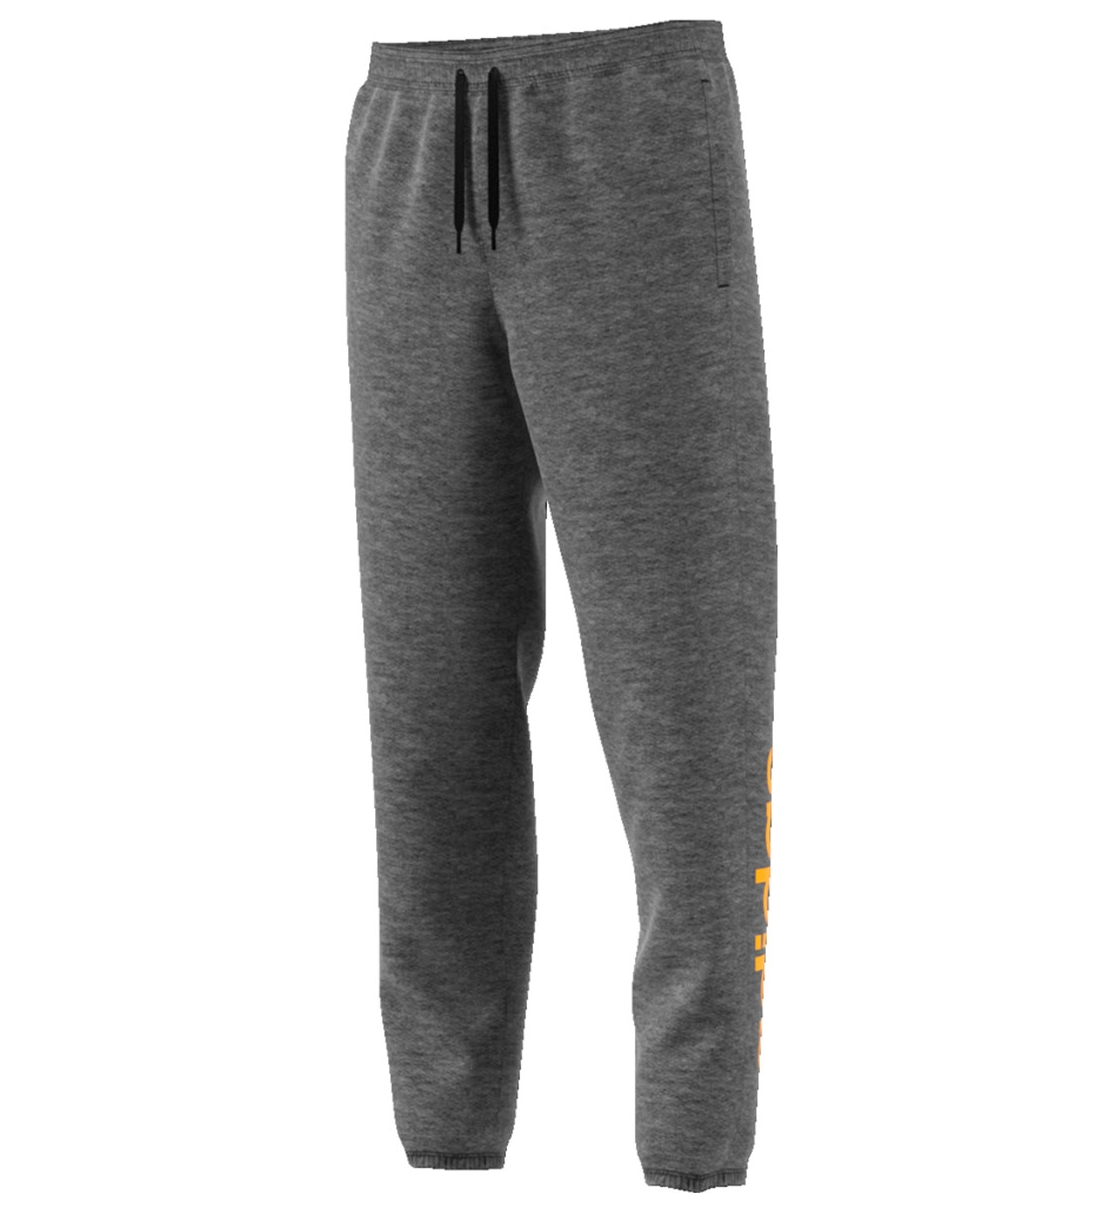 Adidas Fw19 Essentials Linear Tapered Pant Fleece